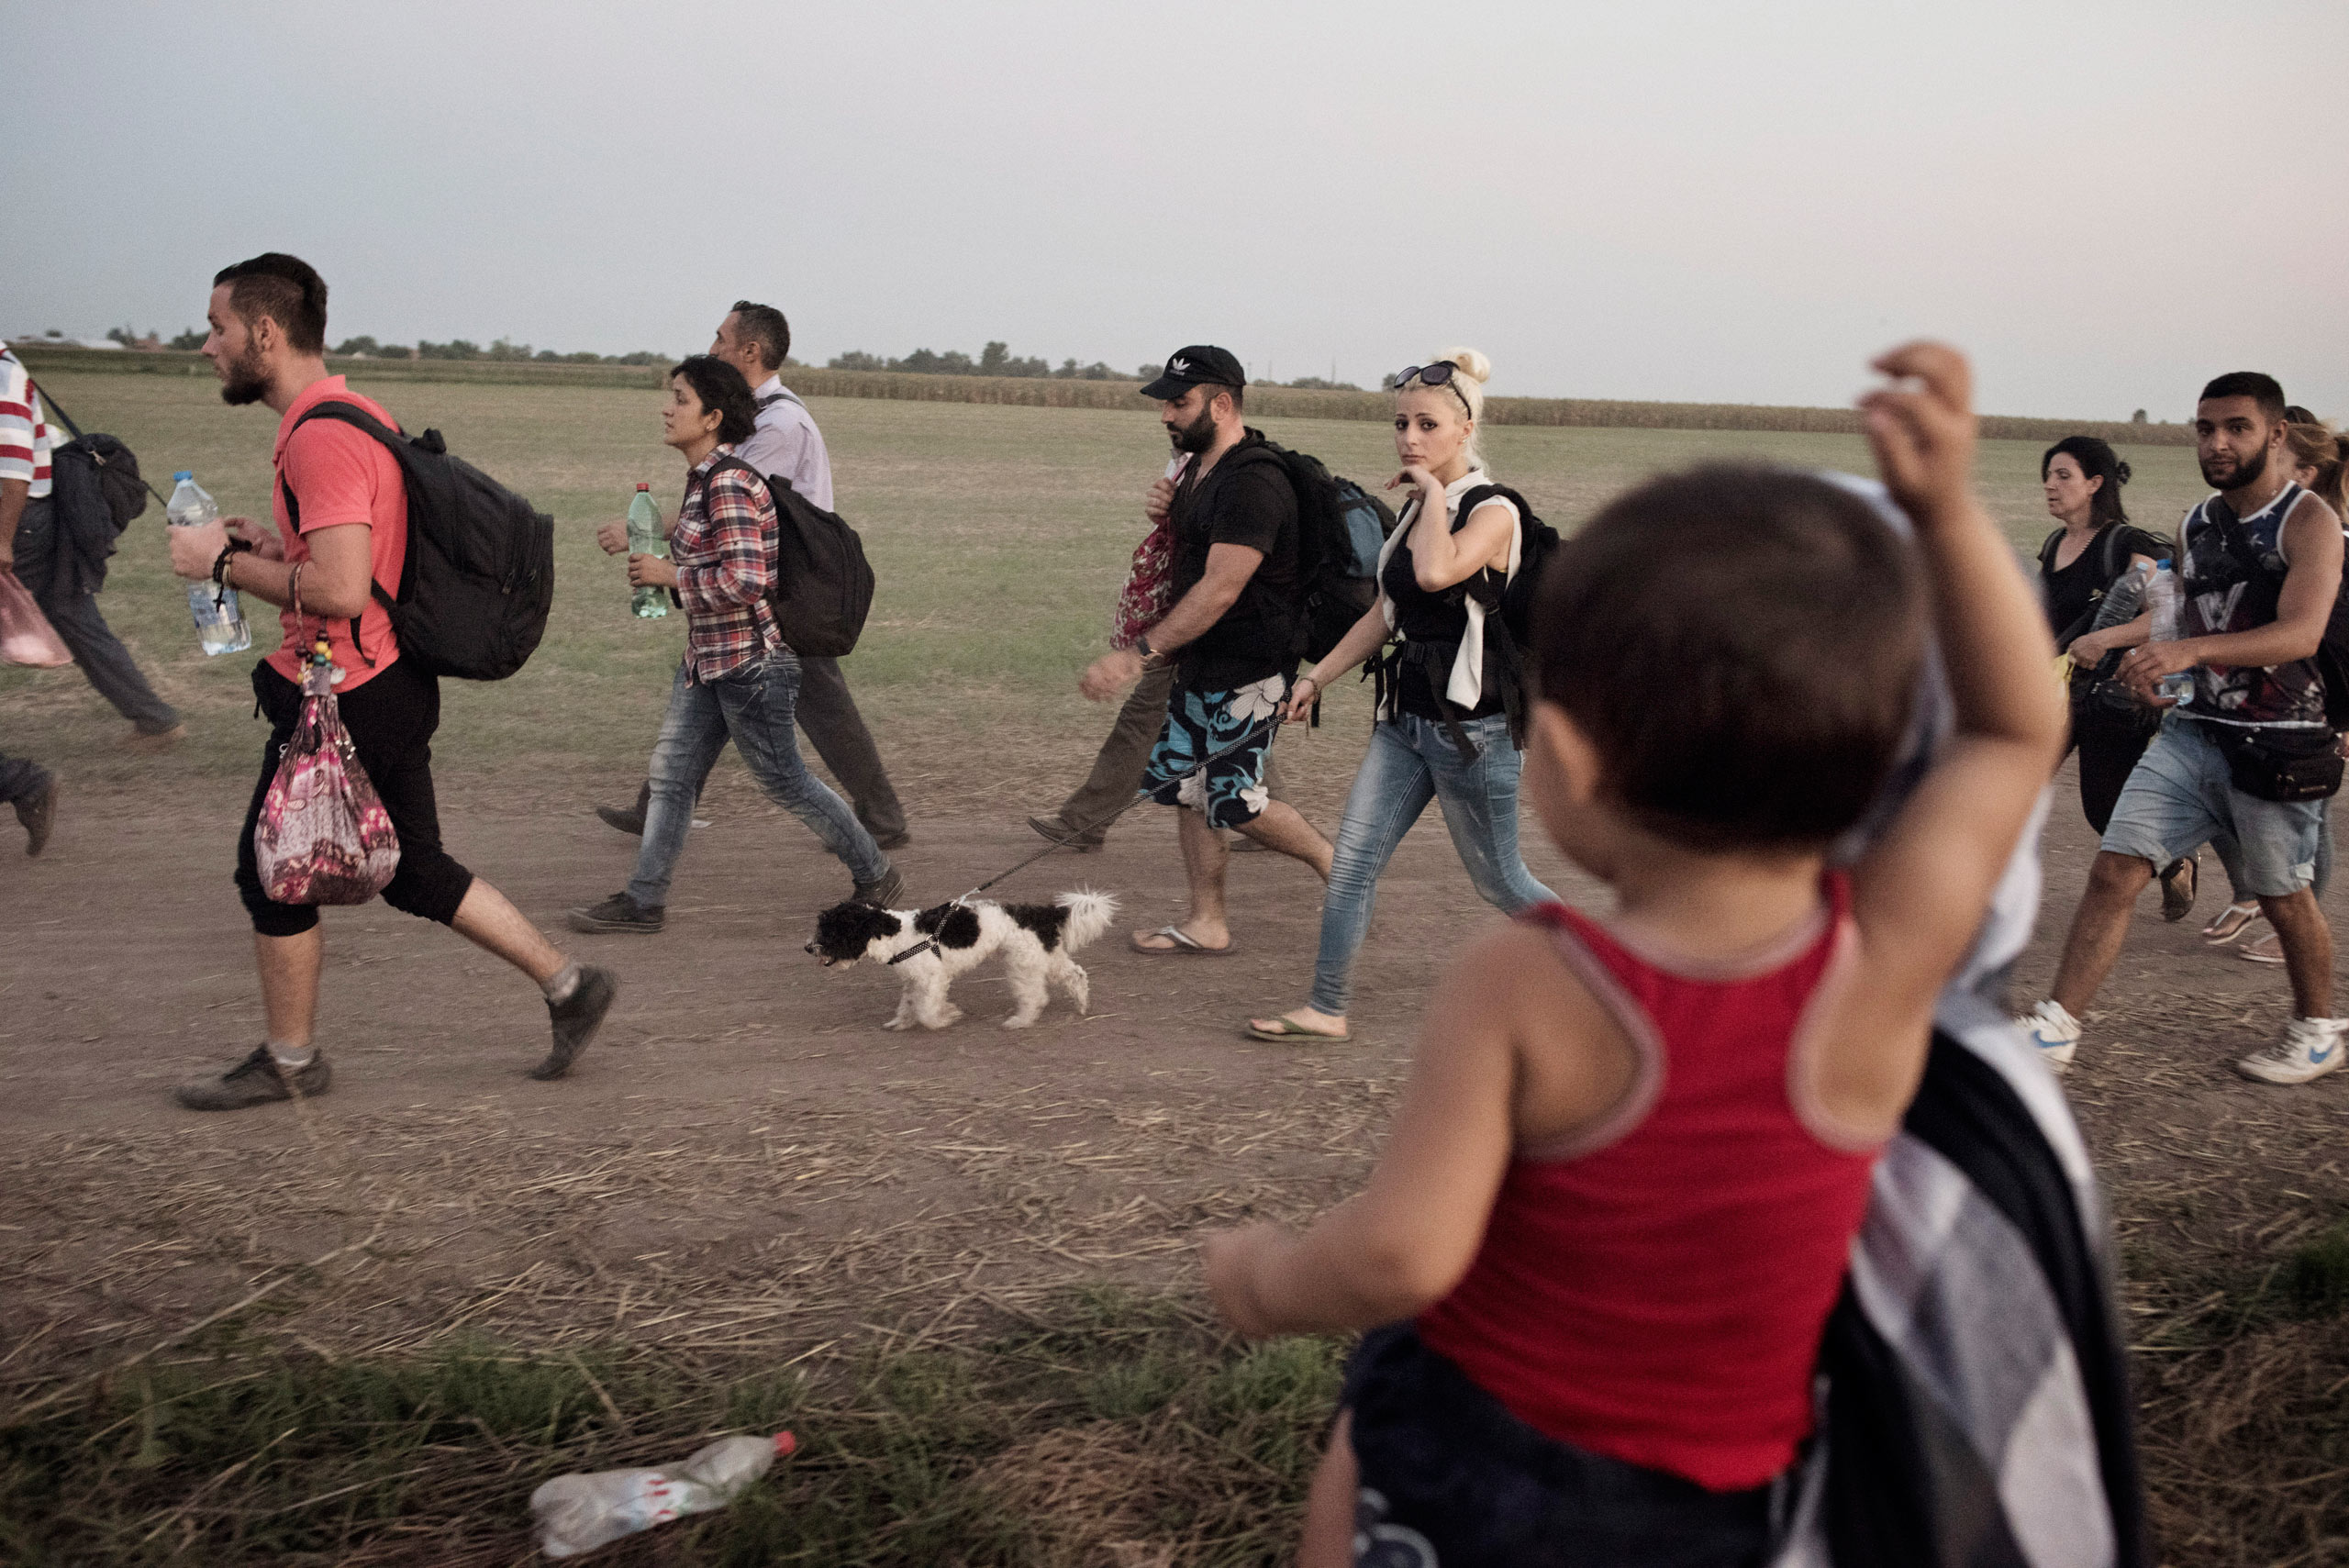 A group of migrants walks toward a Hungarian detention center for migrants arriving in the European Union, Aug. 31, 2015.